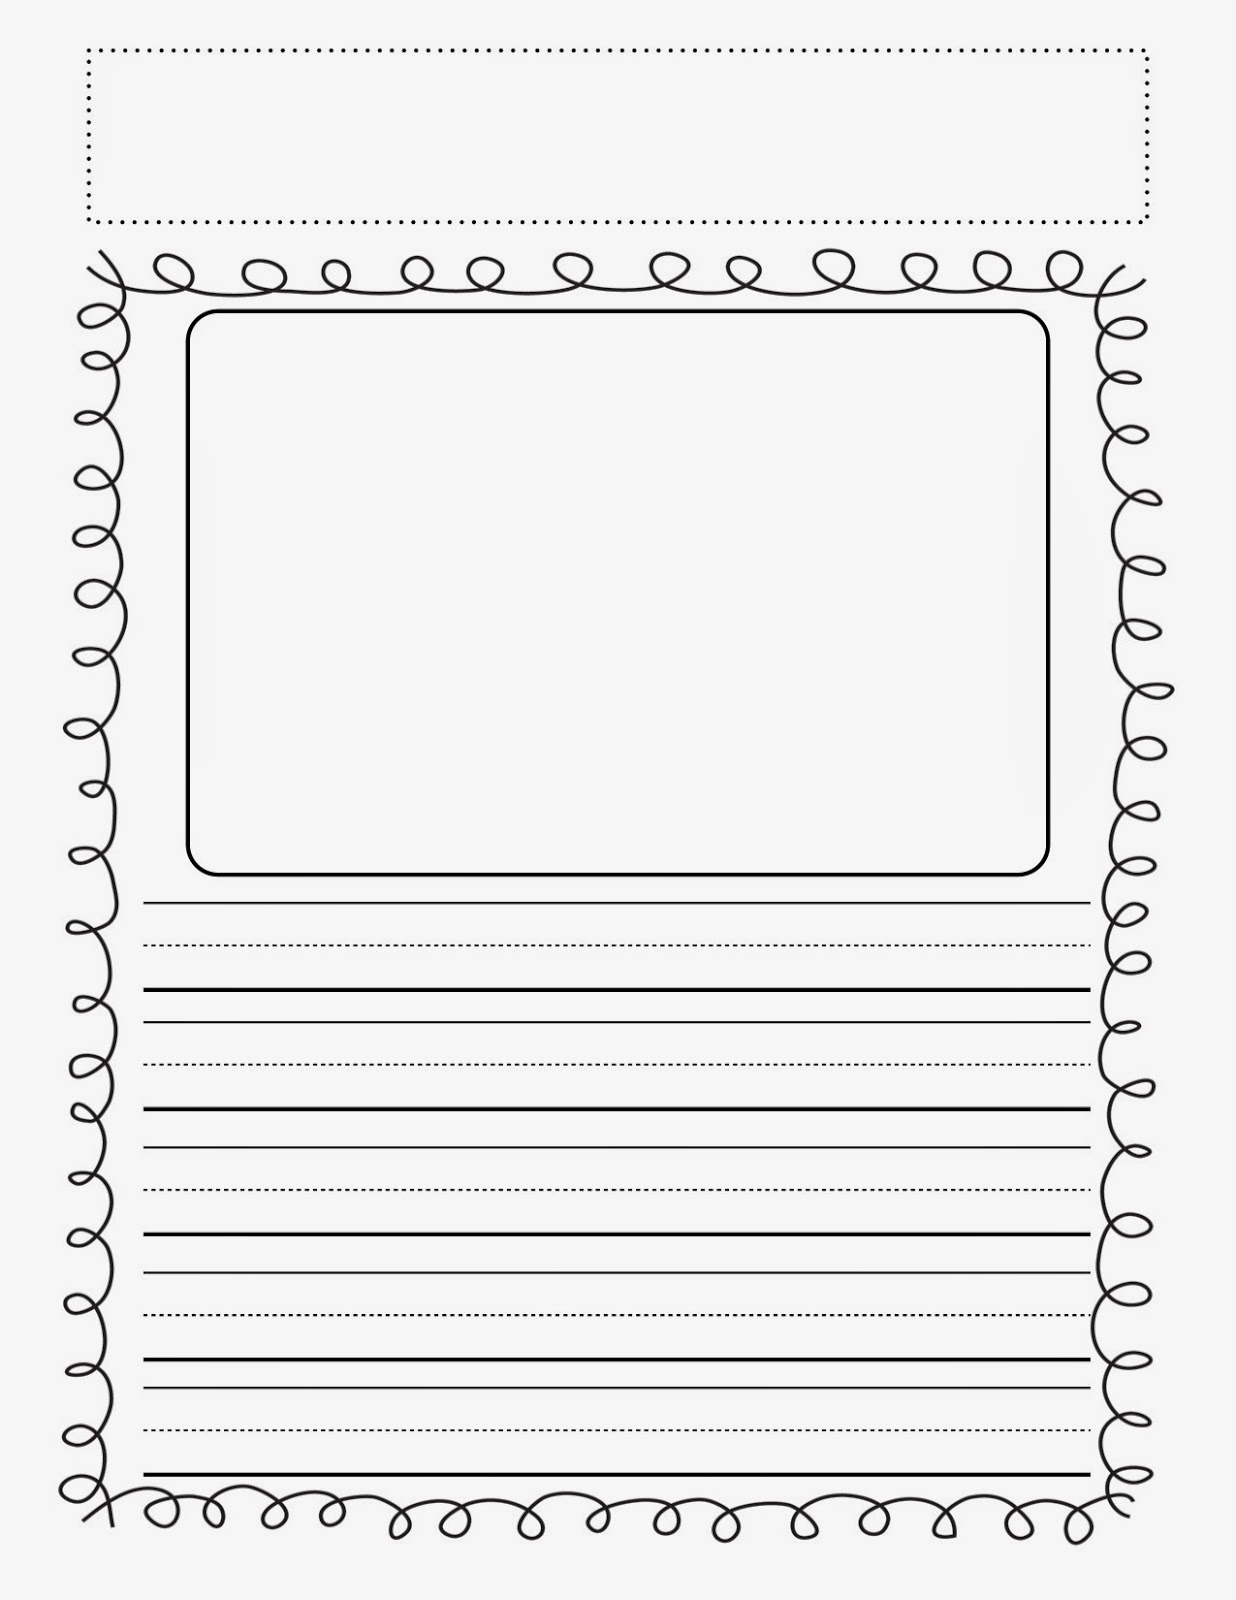 Lined Paper Template Download Free Documents In PDF Word Payez Beyond Wages  Best Photos Of Nd  Lined Paper Printables